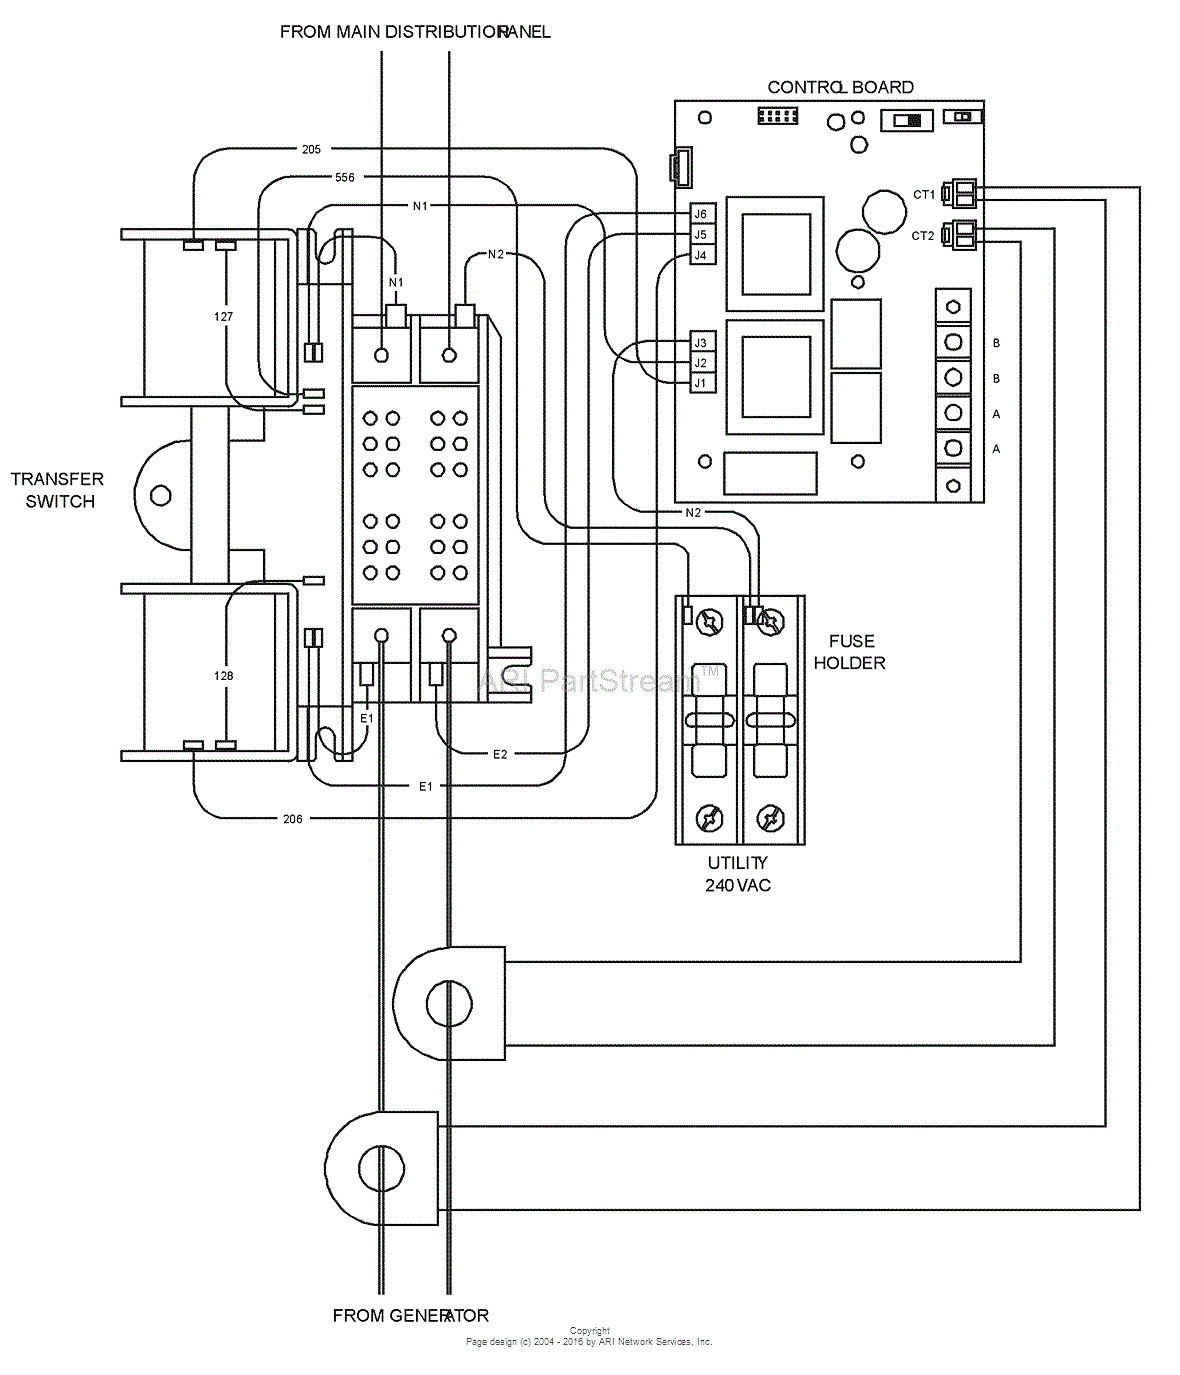 generac rts transfer switch wiring diagram Download-Generac Generator Wiring Diagram 100a Automatic Transfer Switch 6-j